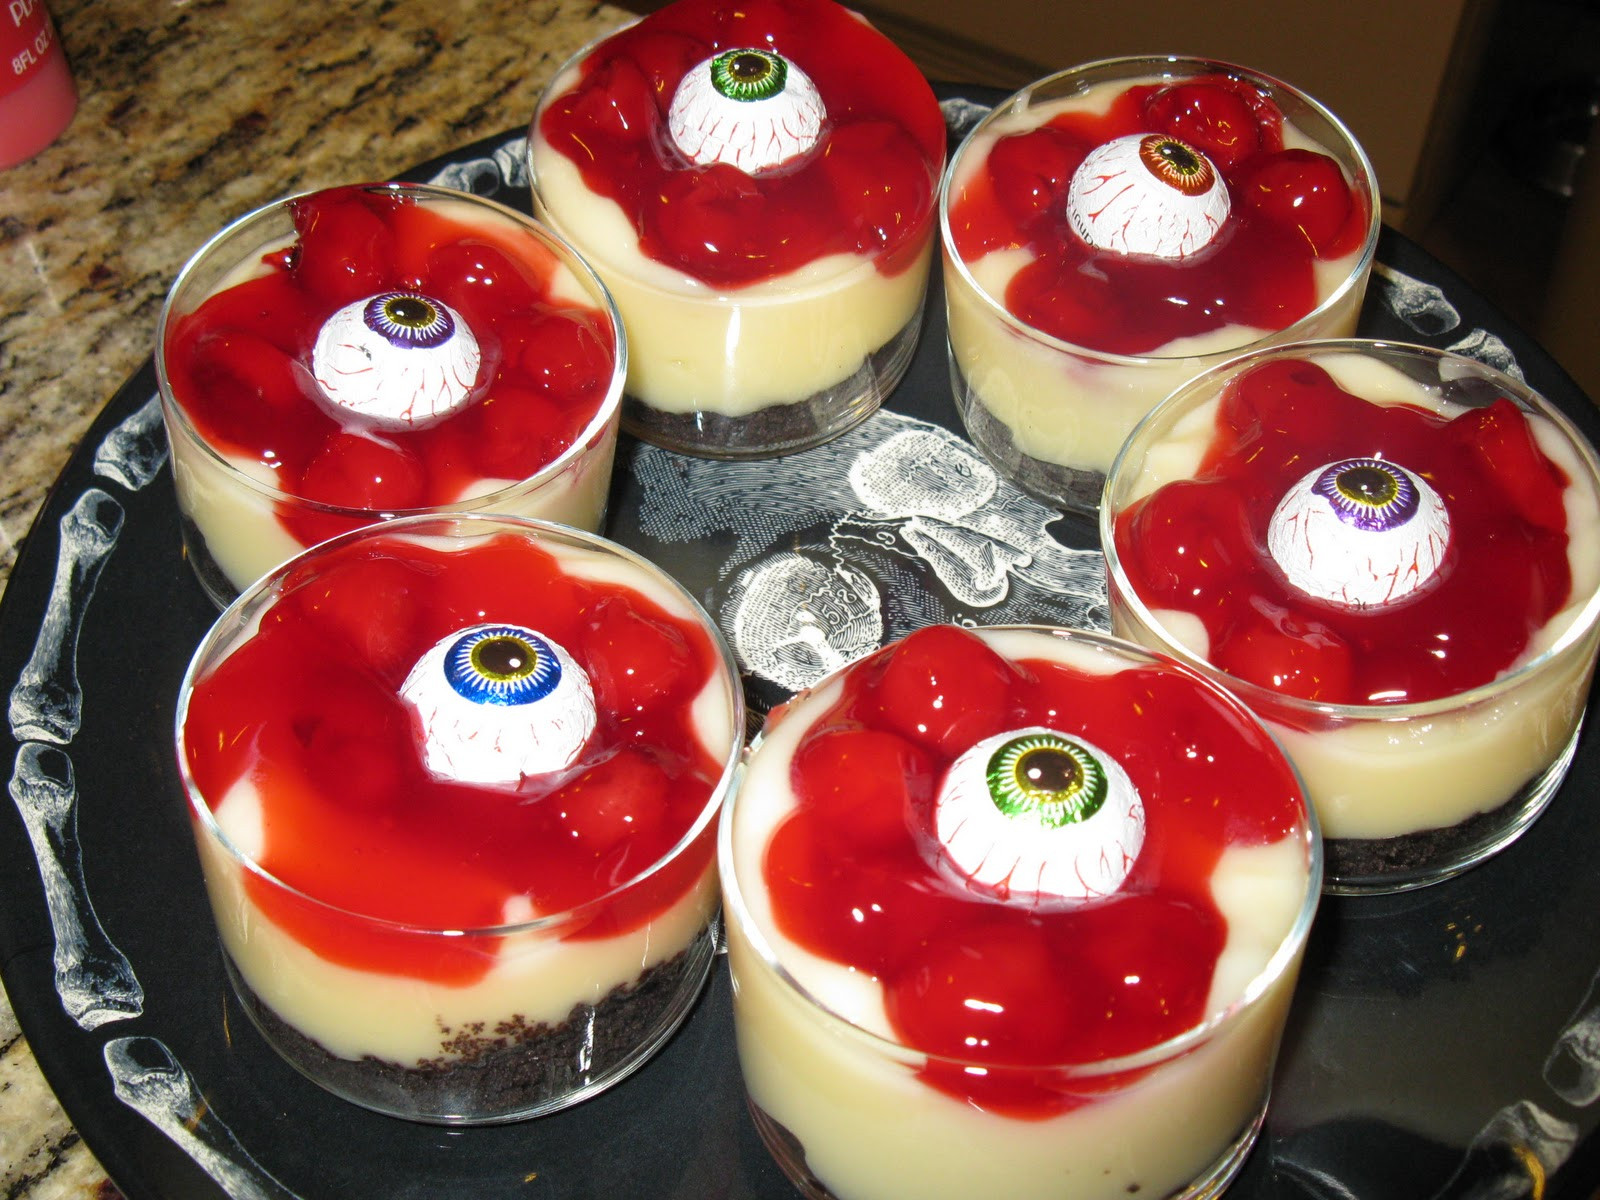 Halloween Themed Desserts  What You Make it Day 27 of 31 Spooktacular Blood and